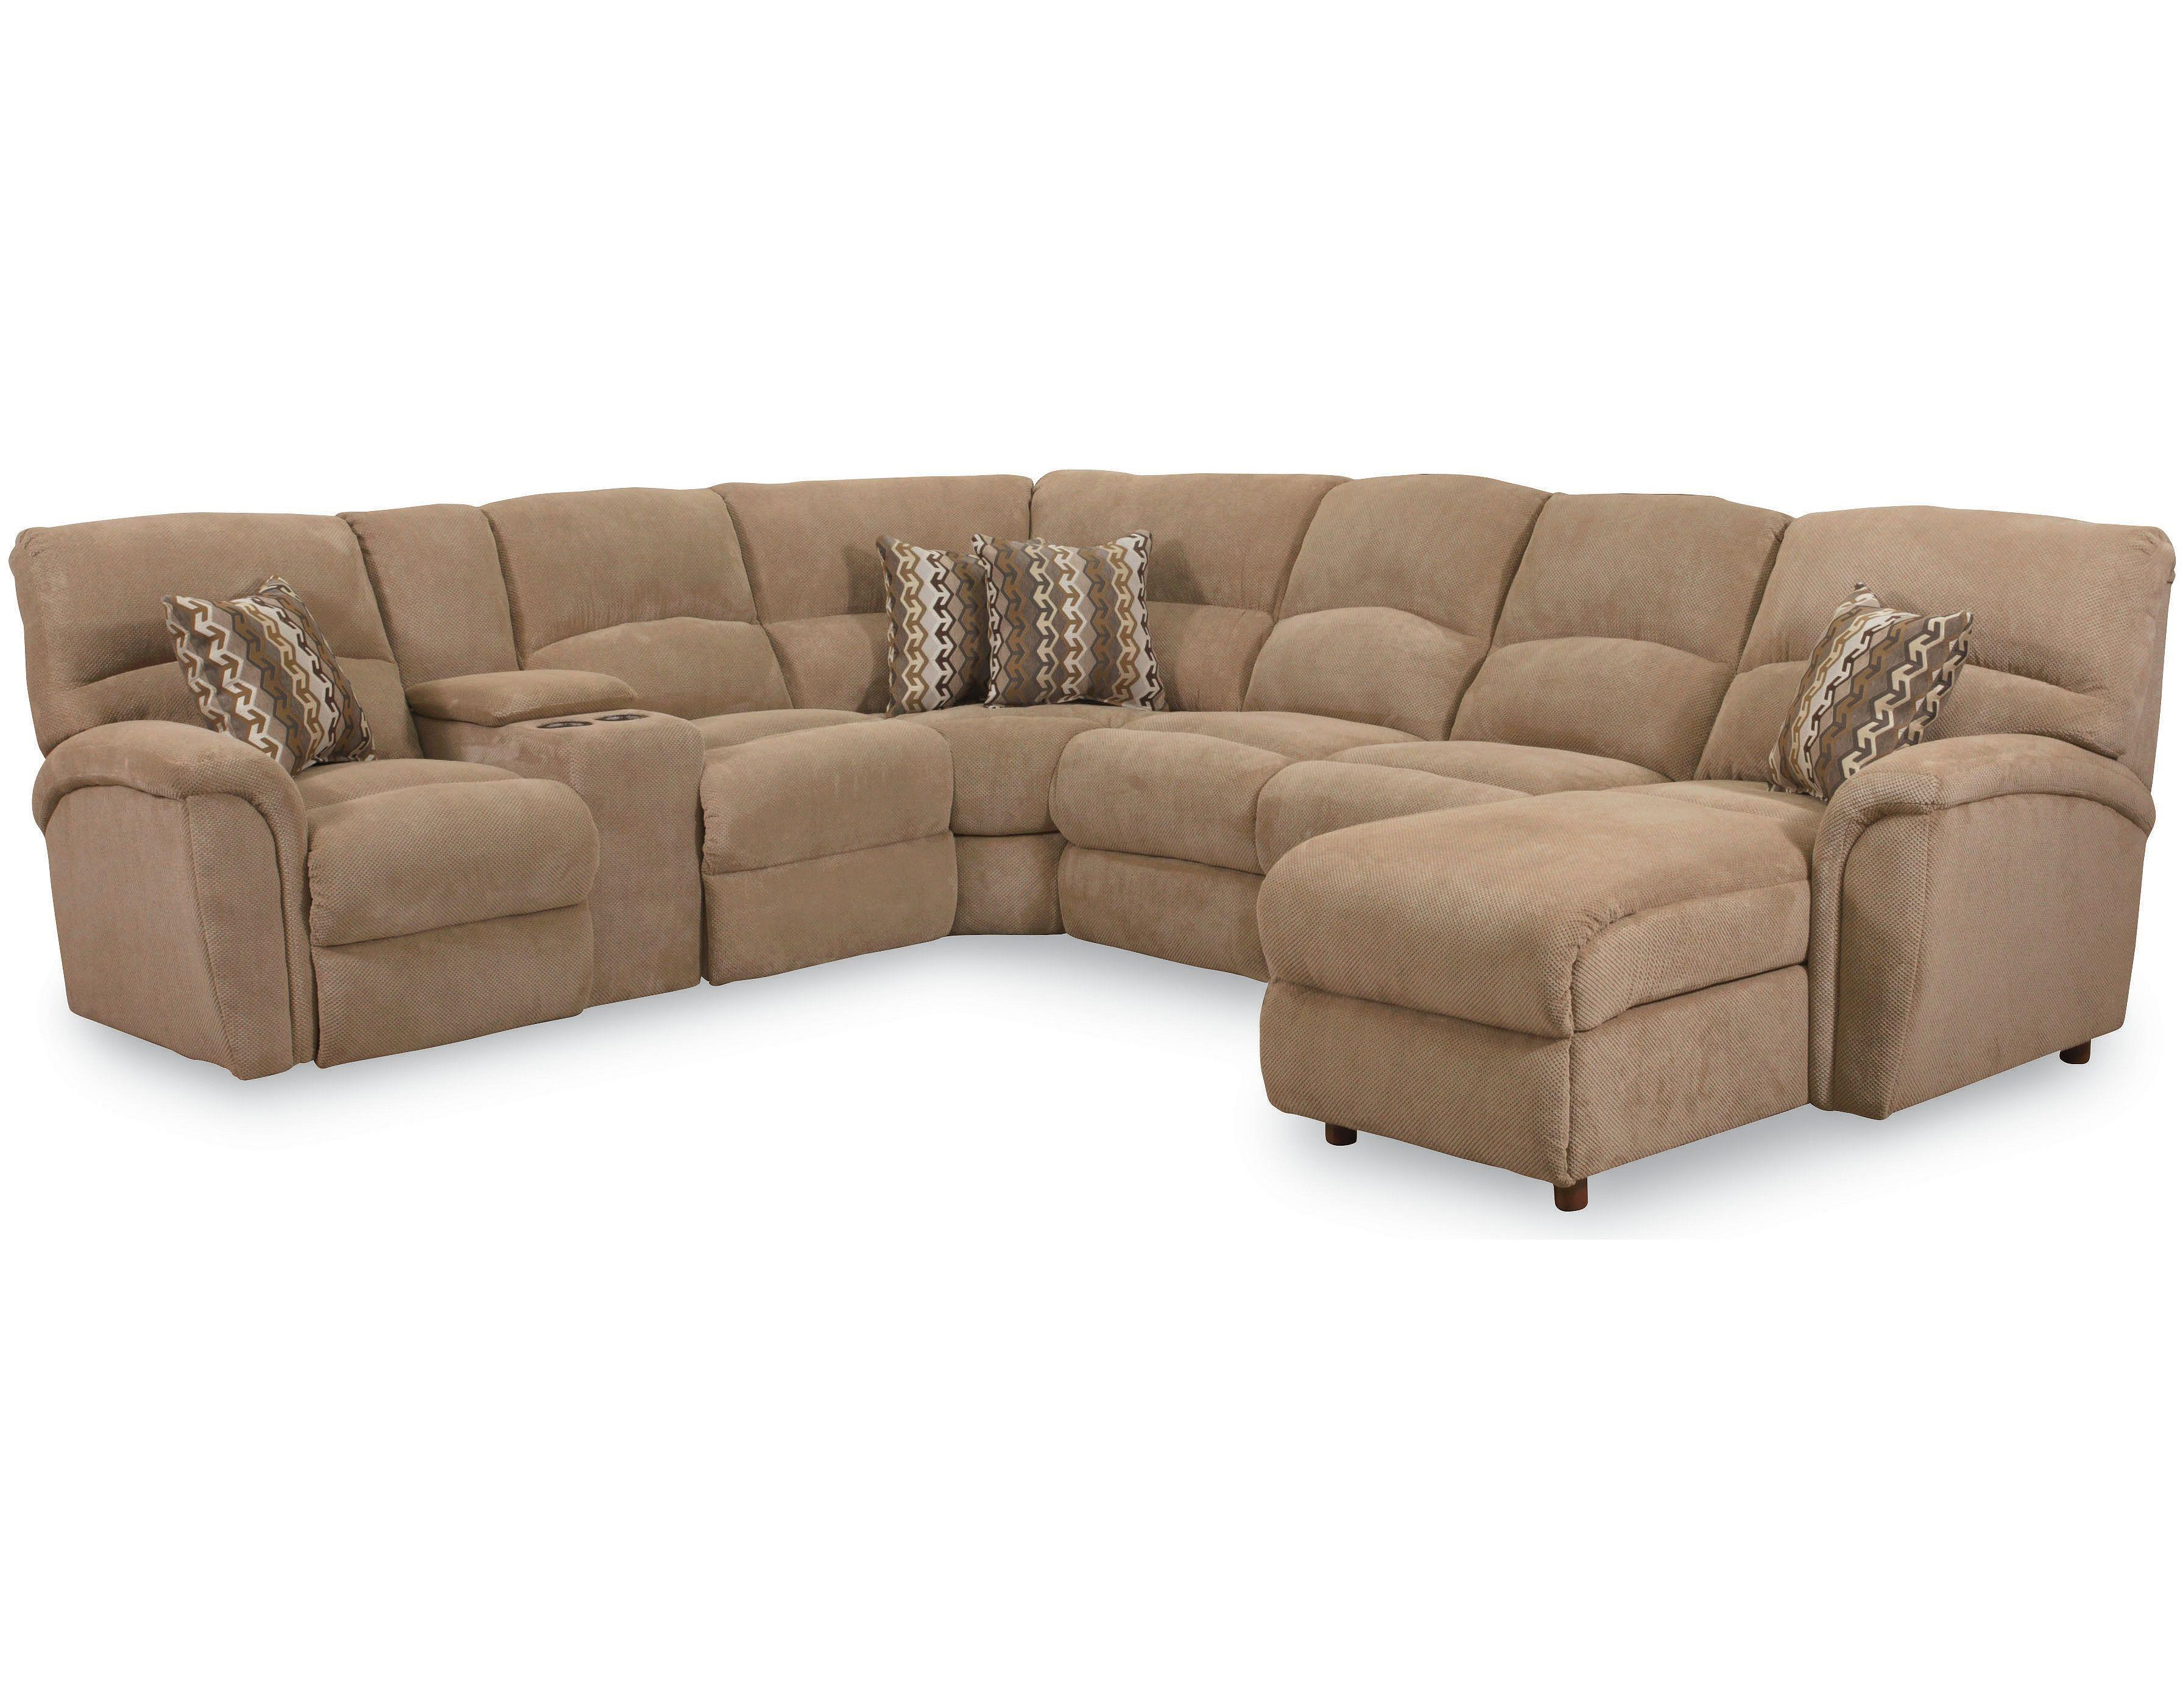 Lane express grand torino transitional 4 piece sectional for 4 piece sectional sofa with chaise